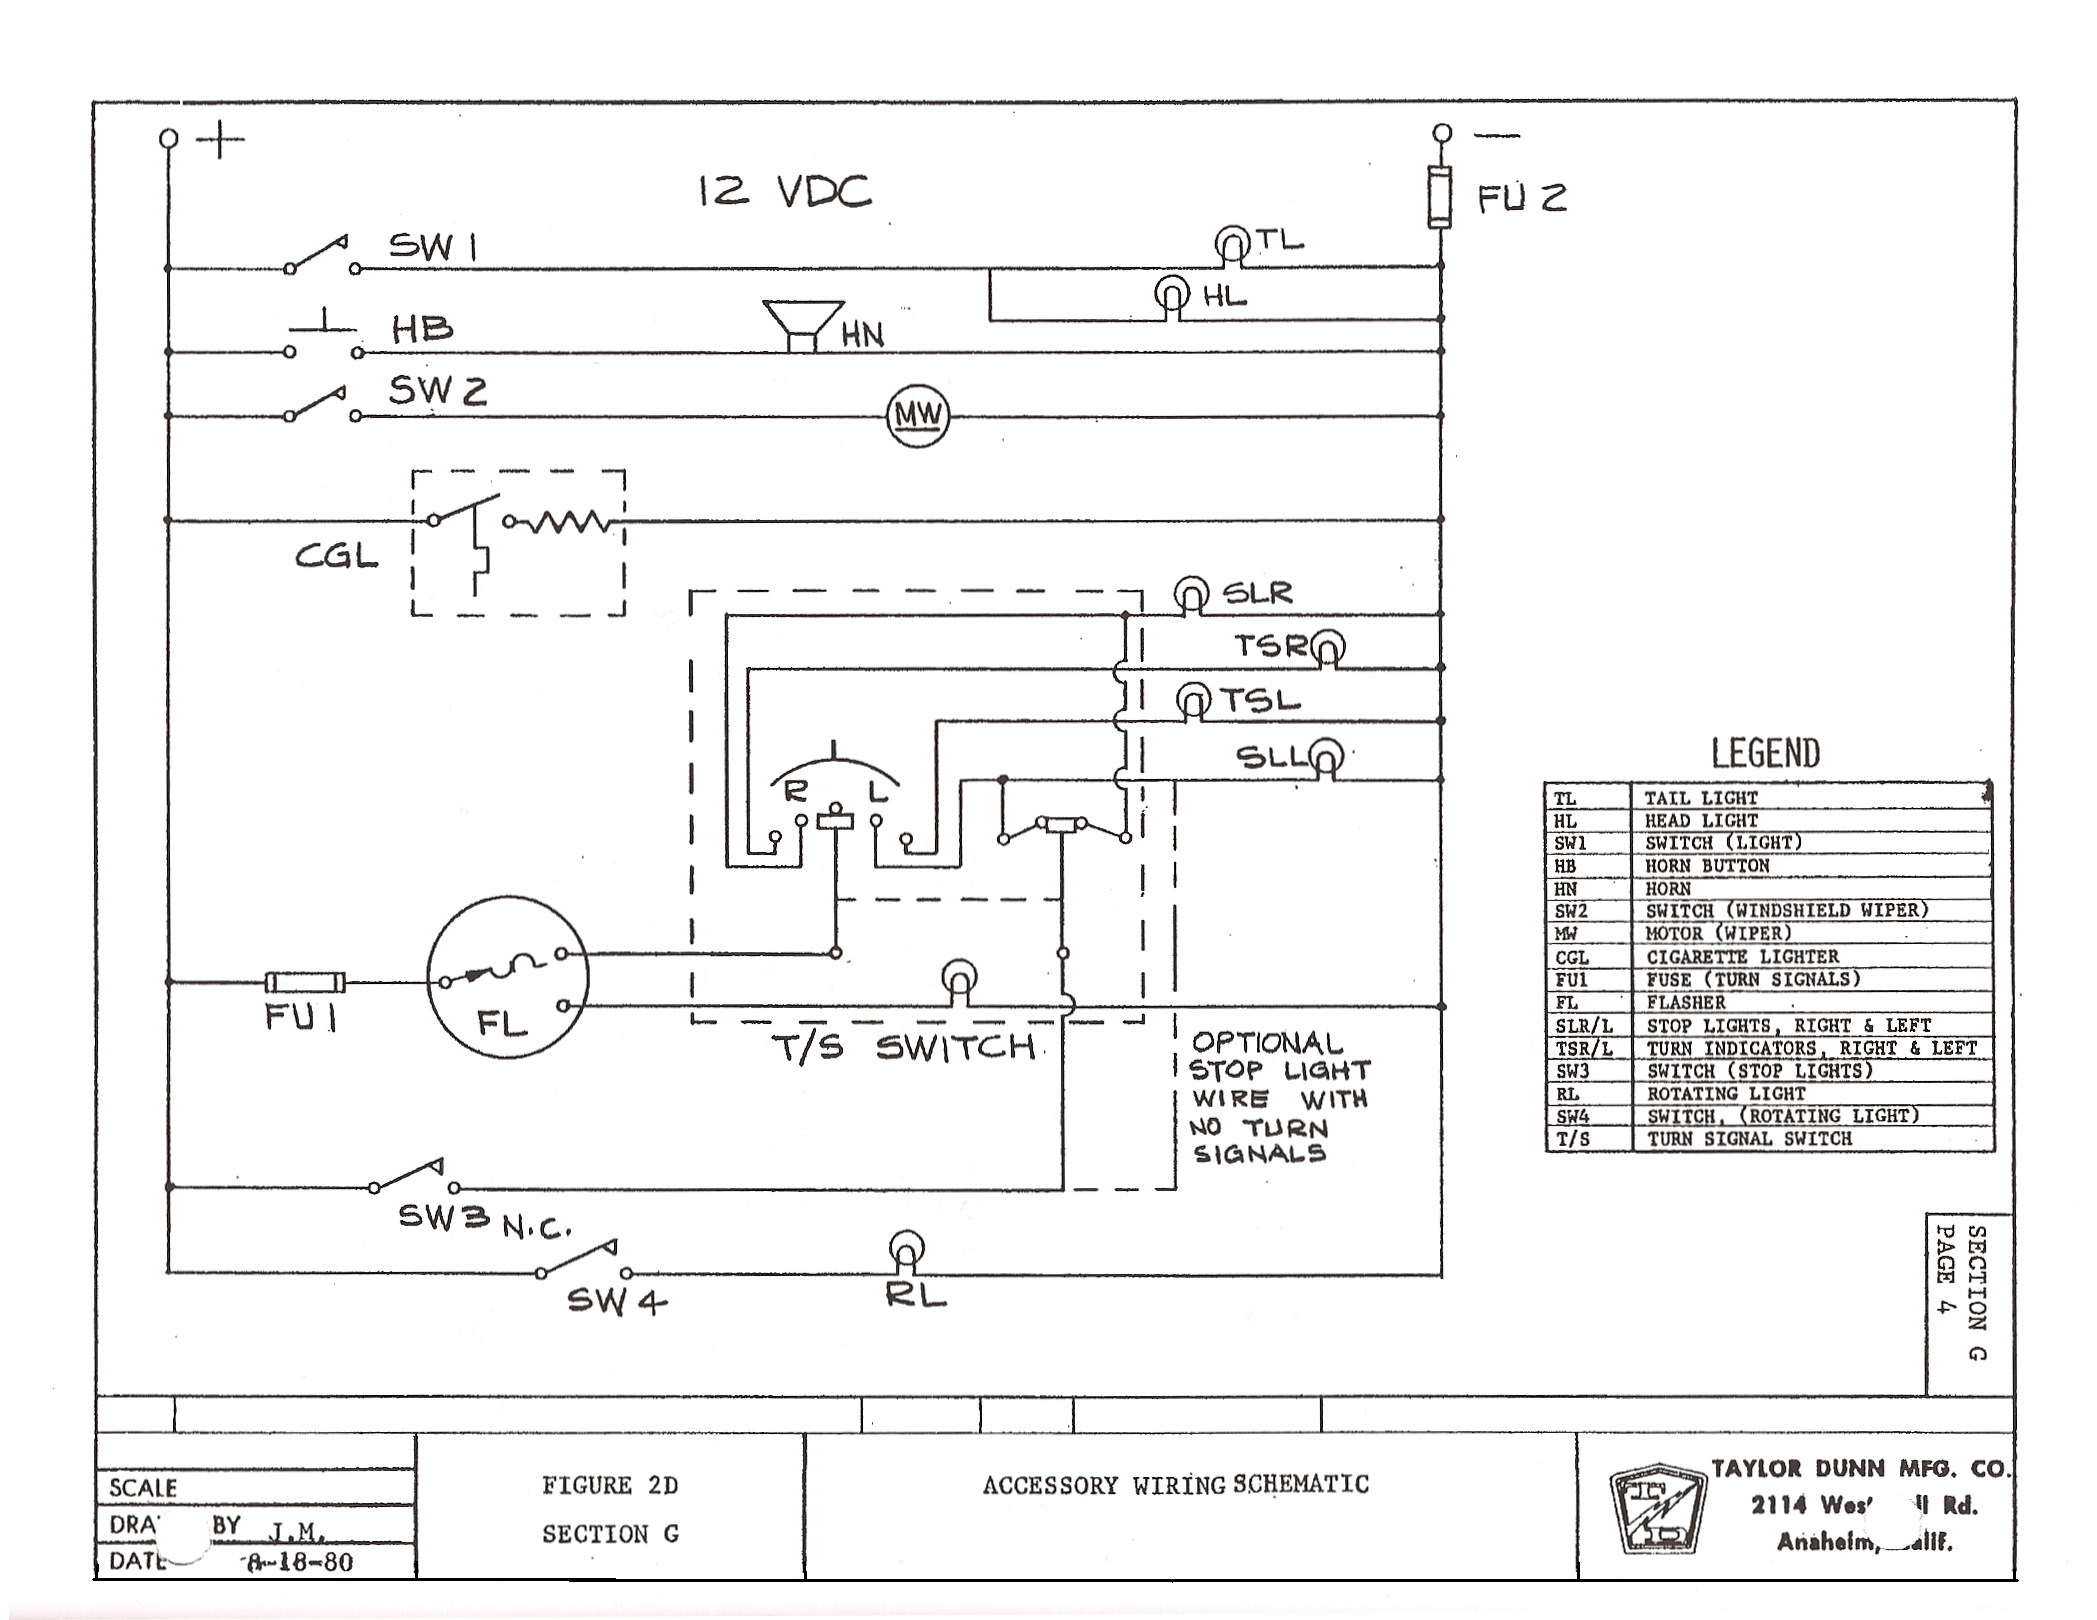 2002 Club Car Wiring Diagram 48 Volt Will Be A Thing Ds 48v 36 Golf Cart Ignition Get Free Image 2004 36v